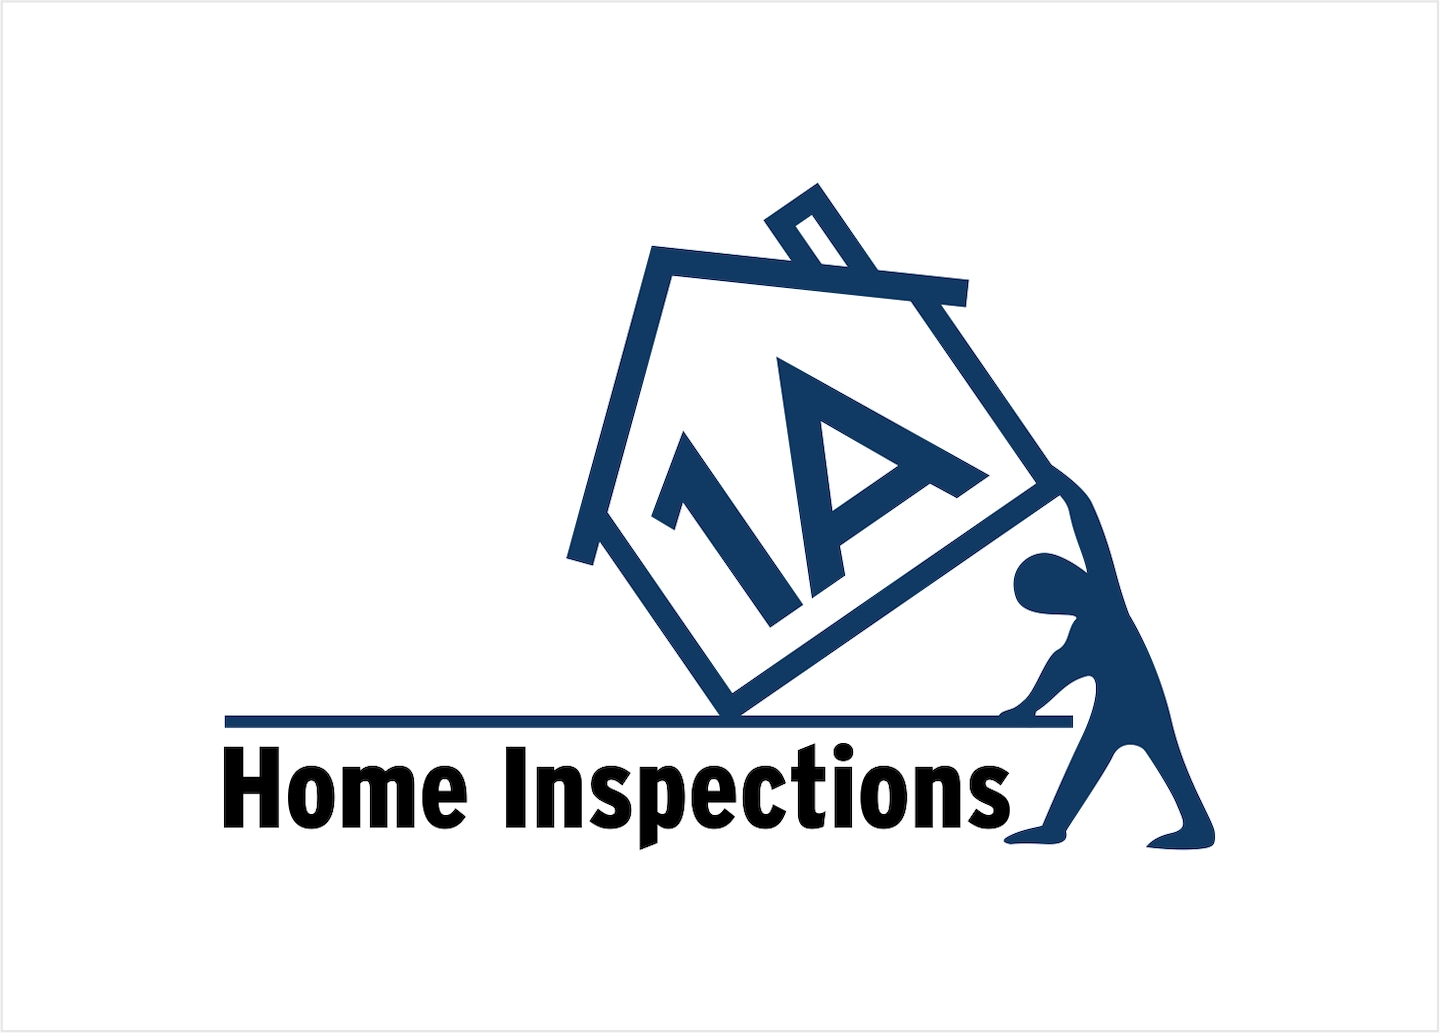 1A Home Inspections